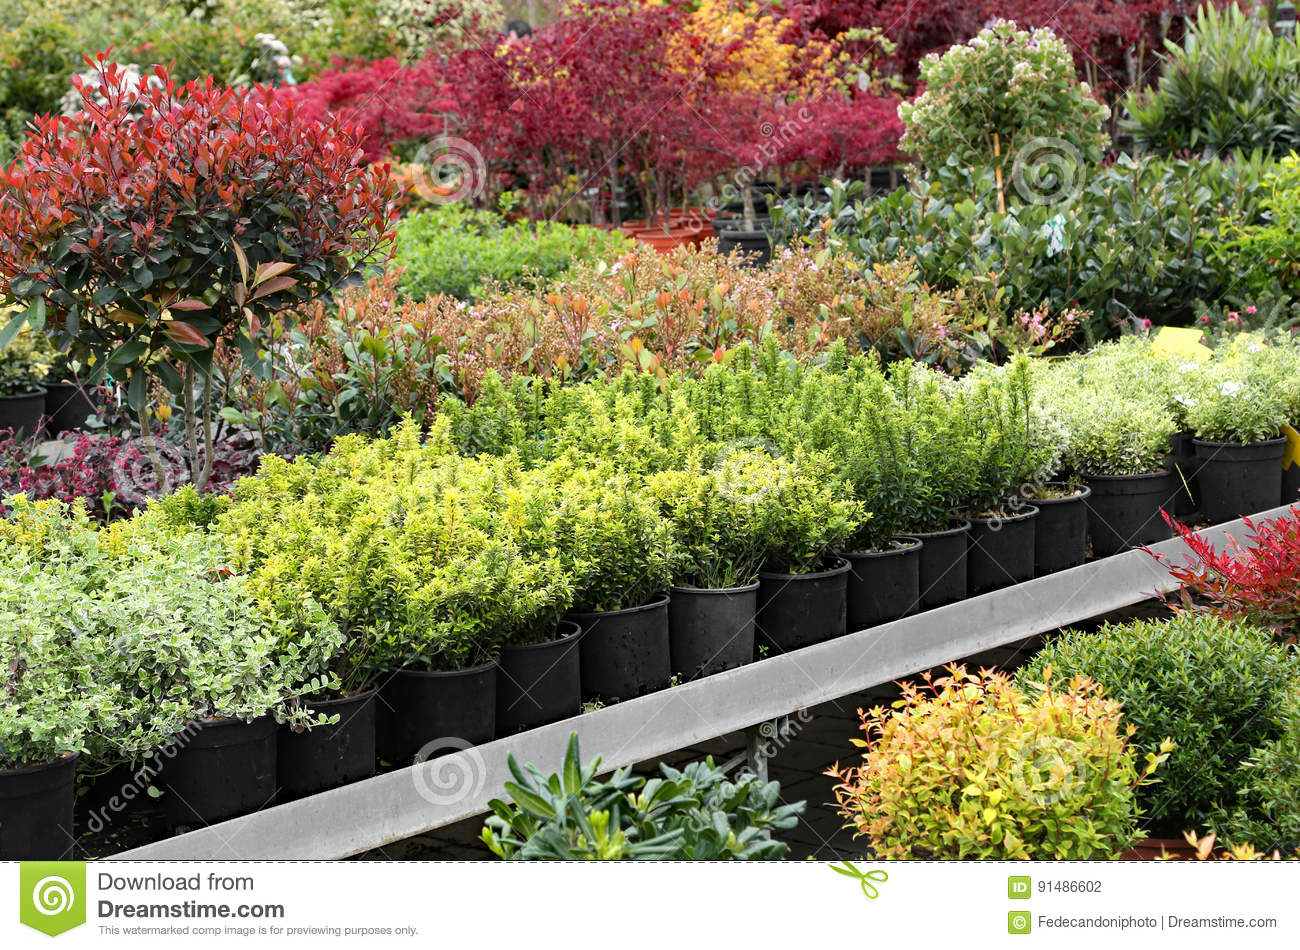 Outdoor Plants For Sale.Outdoor Plants For Sale In The Greenhouse Florist Stock